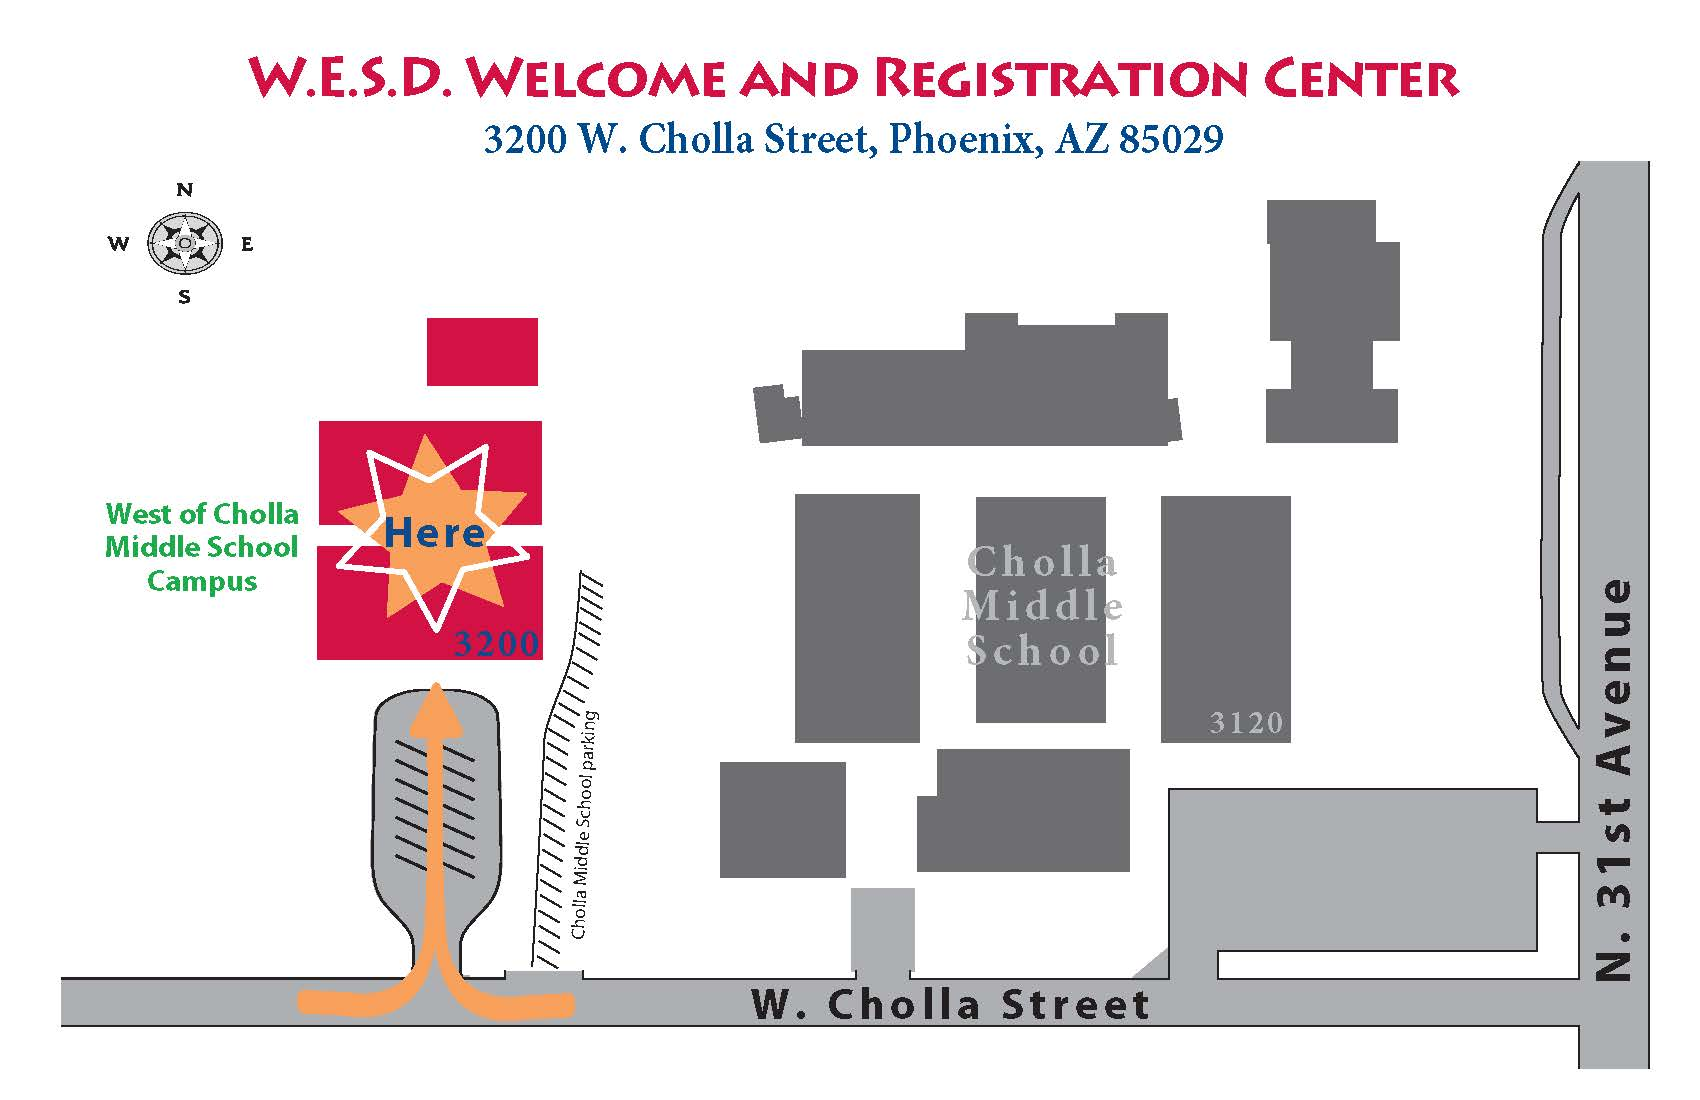 WESD Registration Center Map